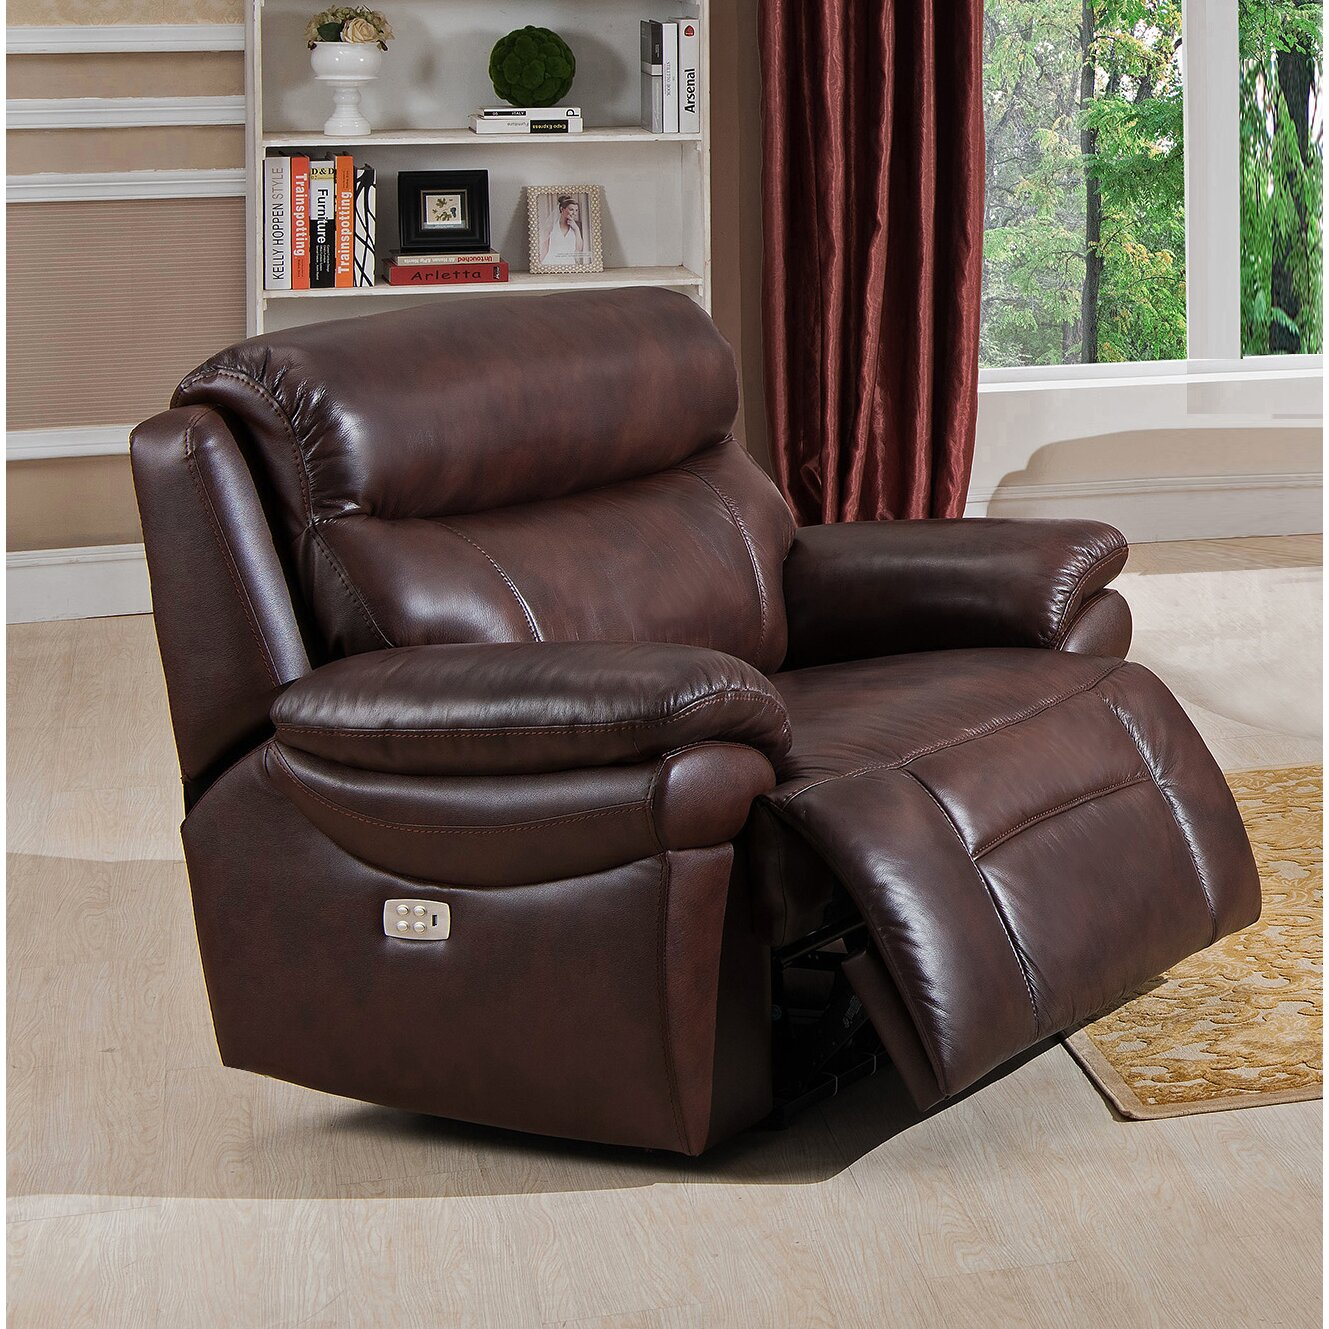 Amax Sanford 2 Piece Leather Power Reclining Living Room Set With USB Ports